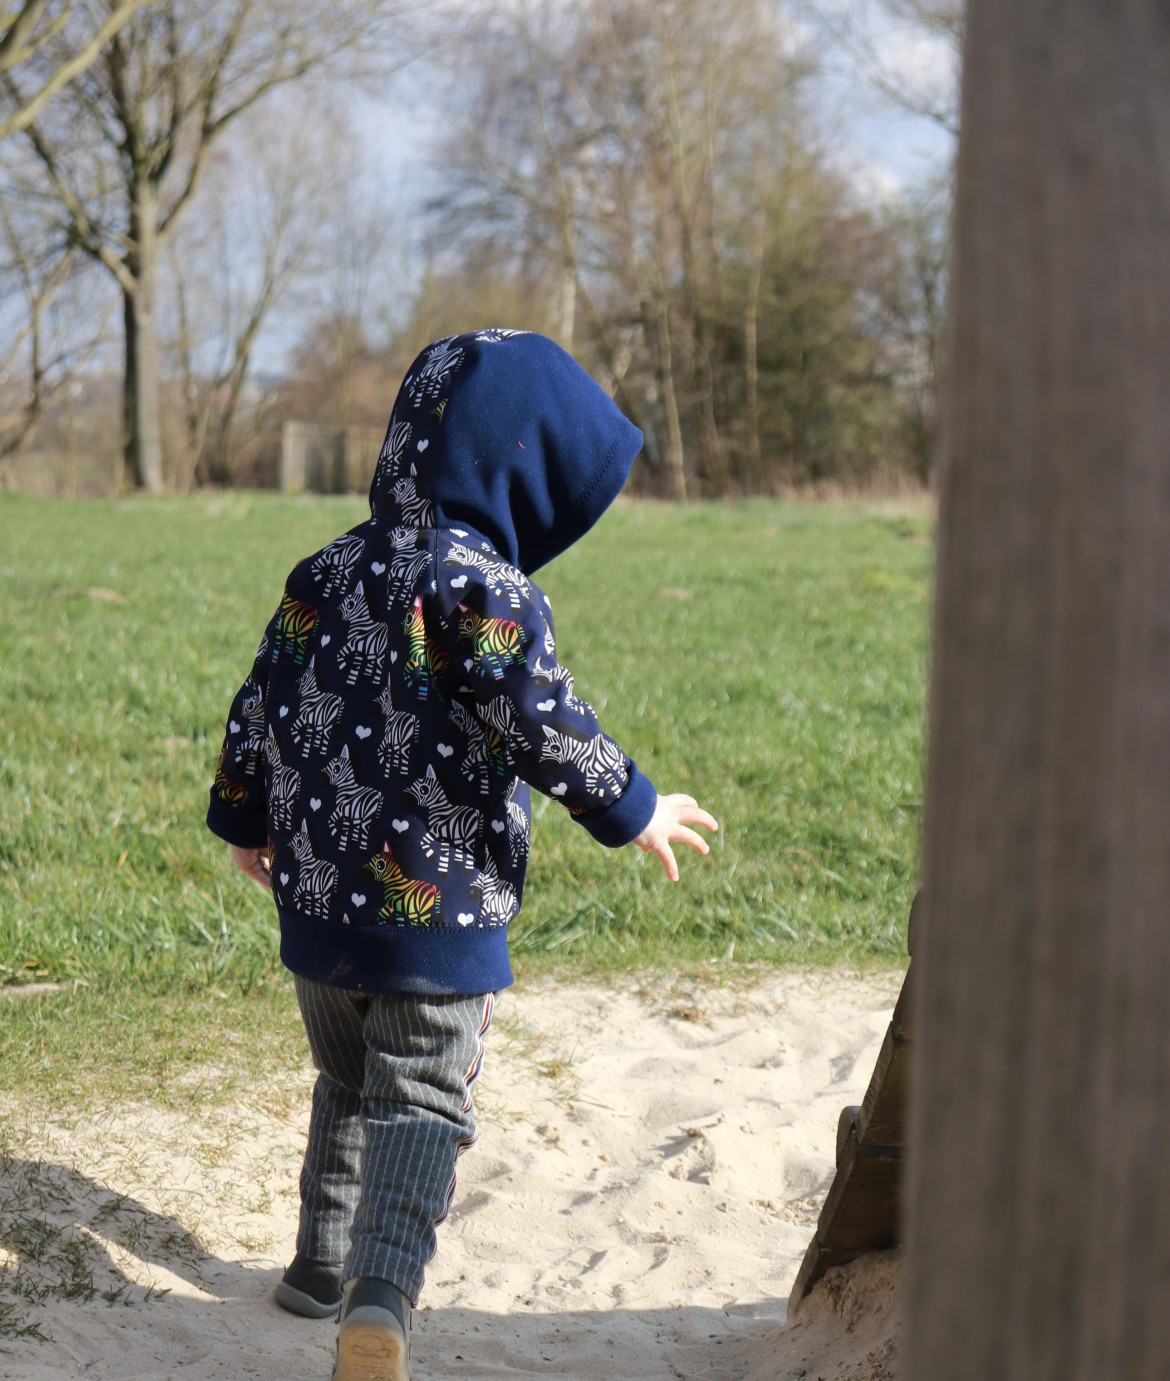 burda style Nutzerkreation ultradent Kinderjacke 11/19